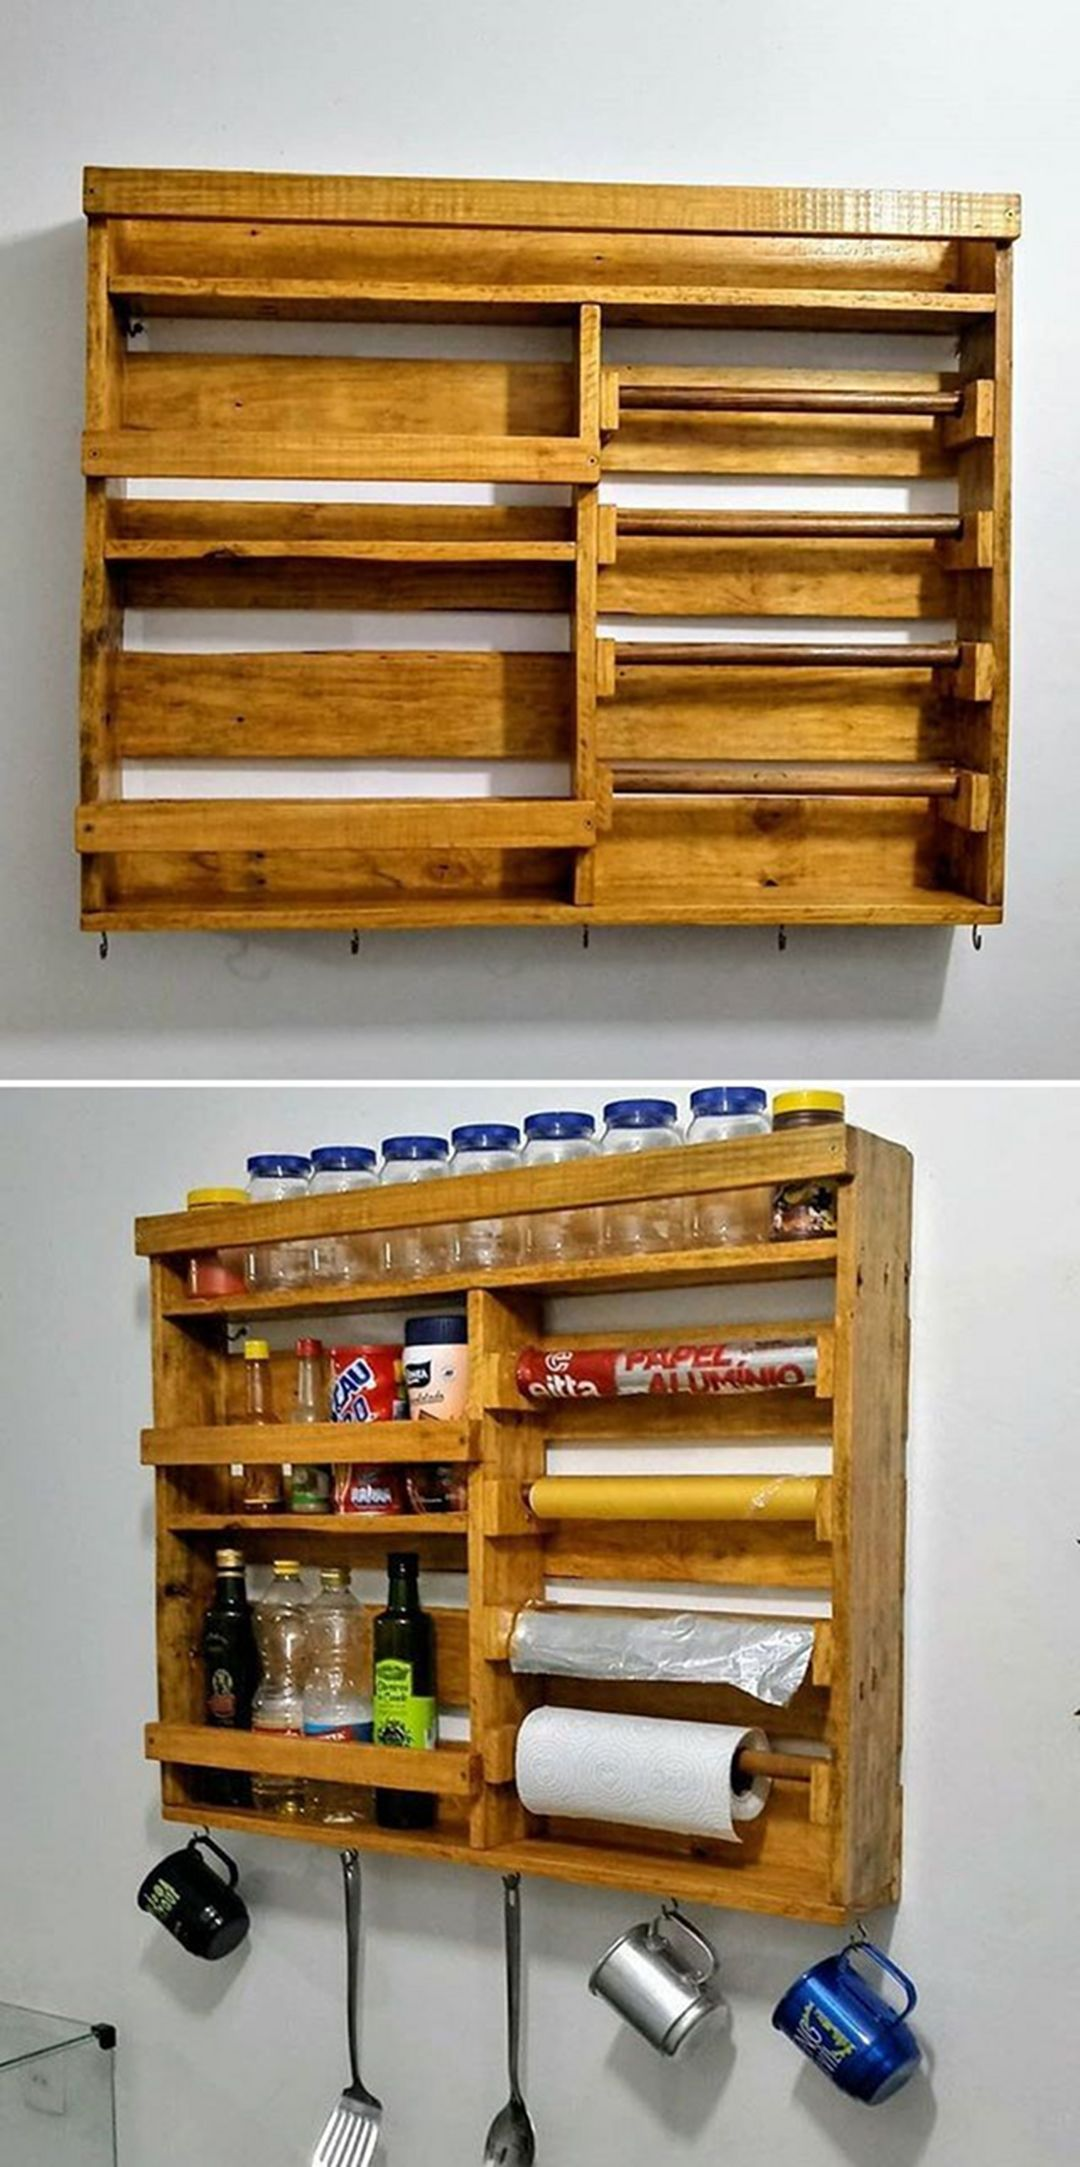 13 Most Easy Diy Wood Pallet Project For Home Decorations Diy